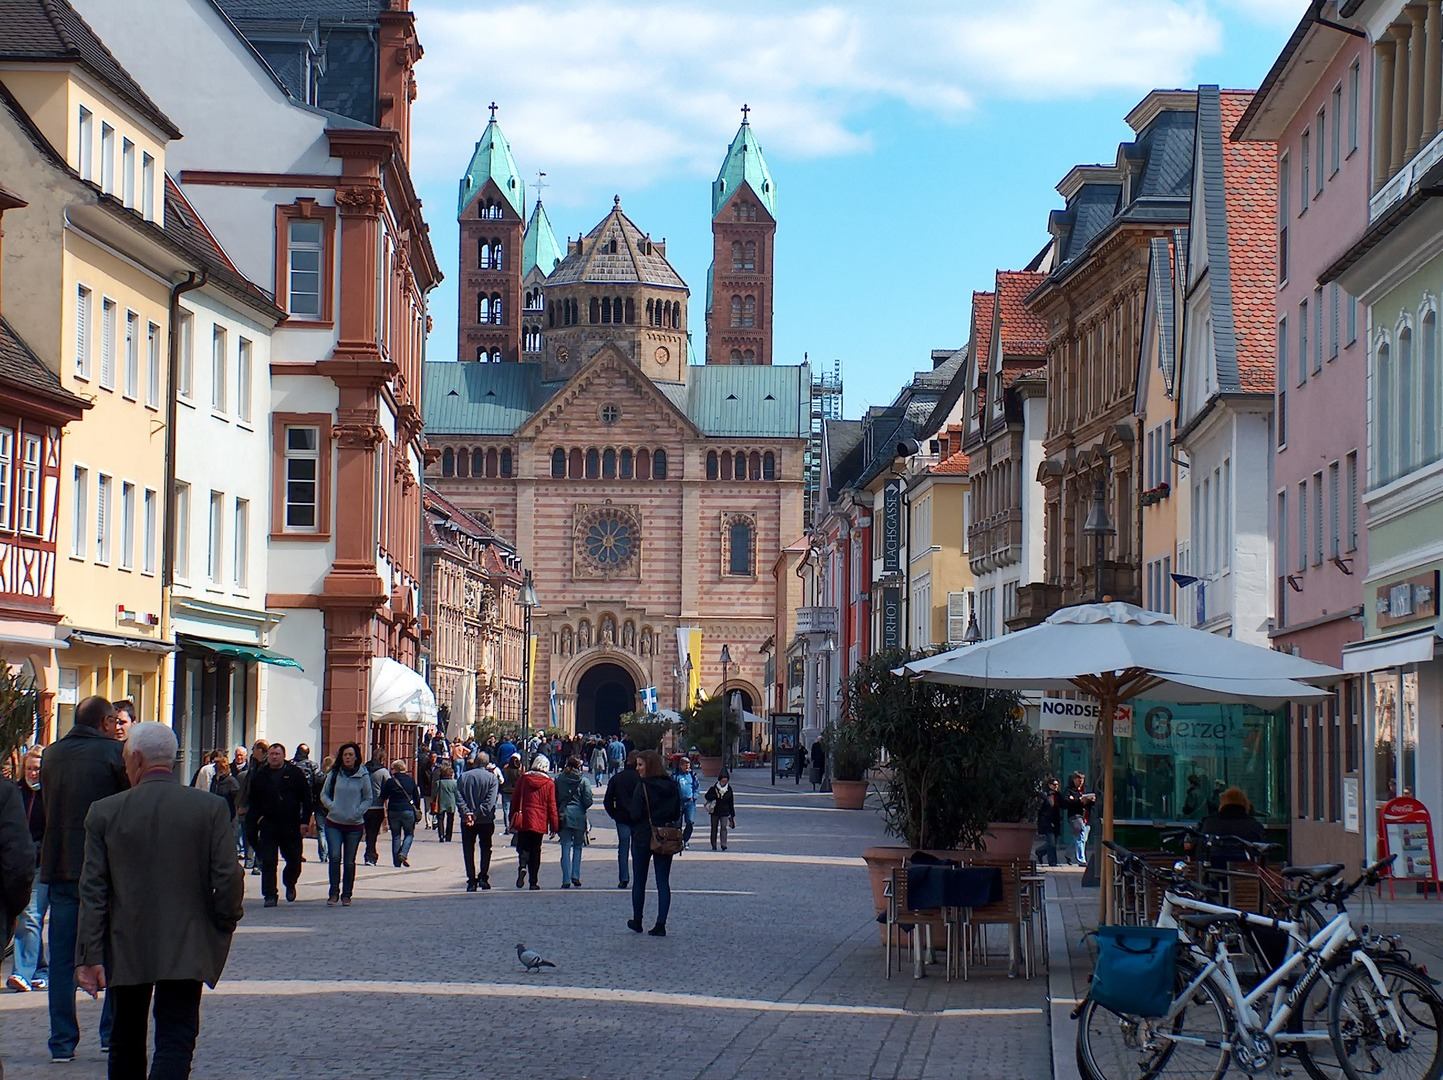 Want to see Palaces? Visit Germany.